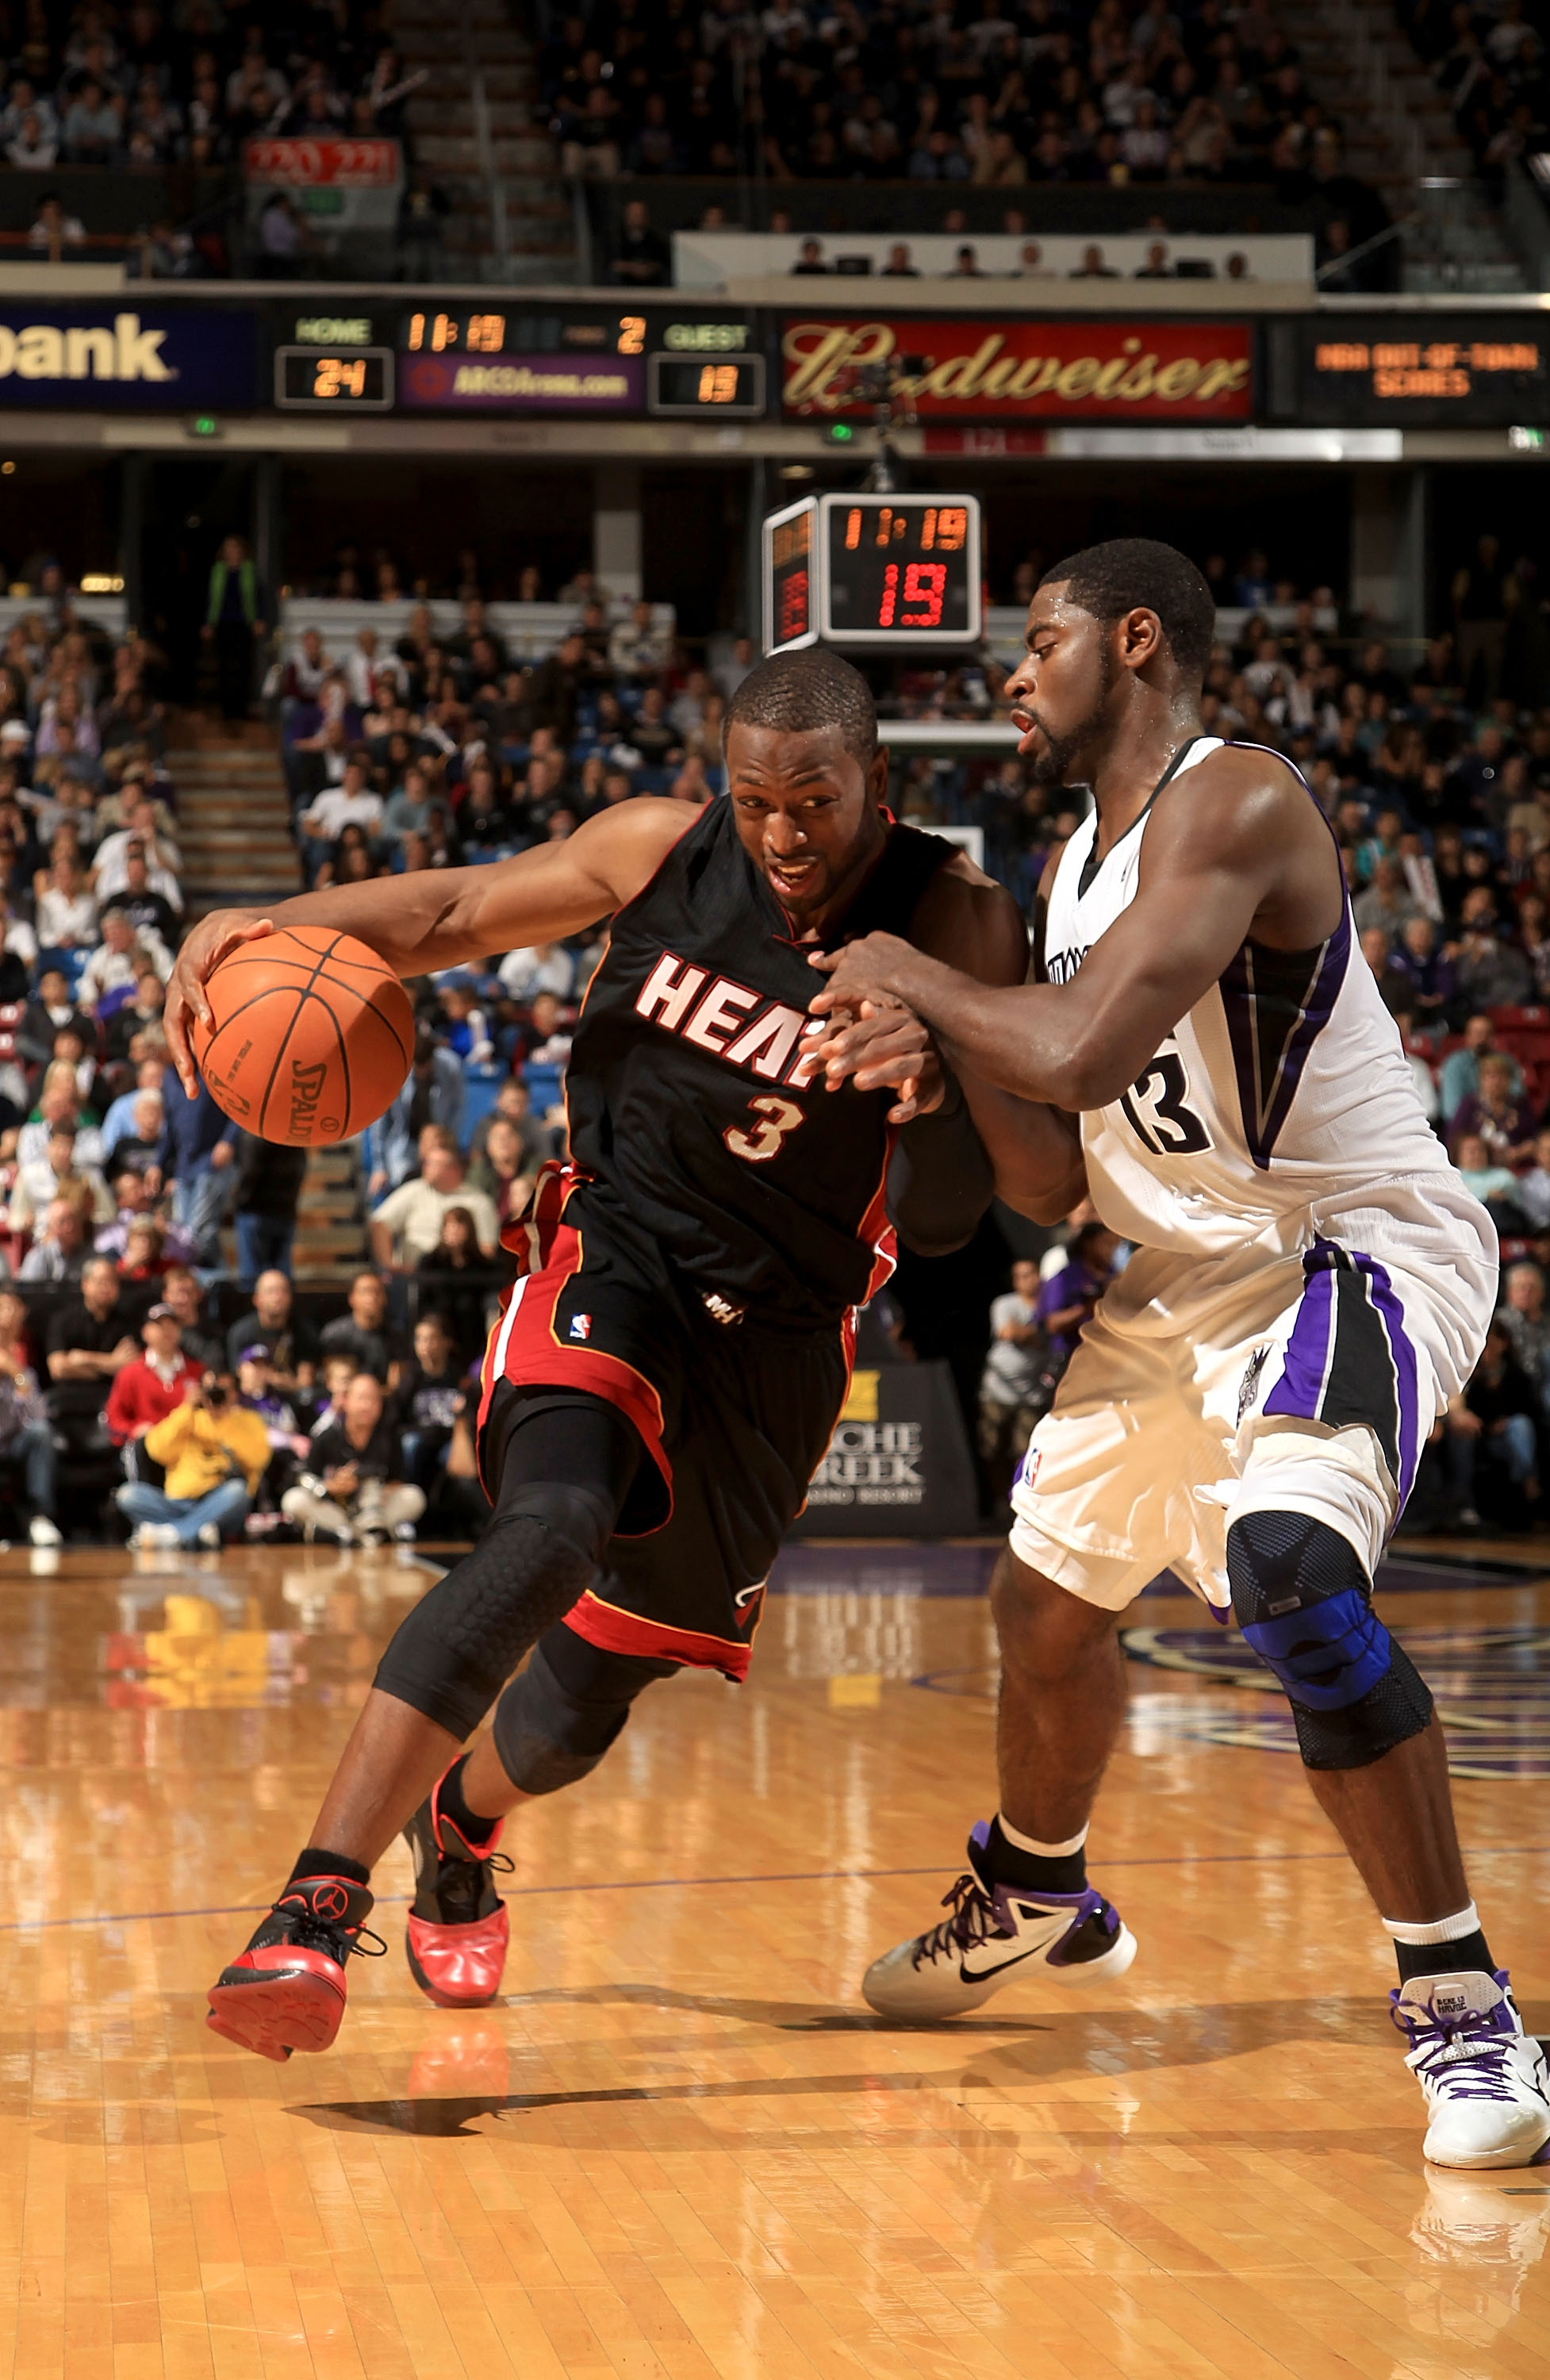 SACRAMENTO, CA - DECEMBER 11: Dwyane Wade #3 of the Miami Heat drives on Tyreke Evans #13 of the Sacramento Kings at ARCO Arena on December 11, 2010 in Sacramento, California. NOTE TO USER: User expressly acknowledges and agrees that, by downloading and o